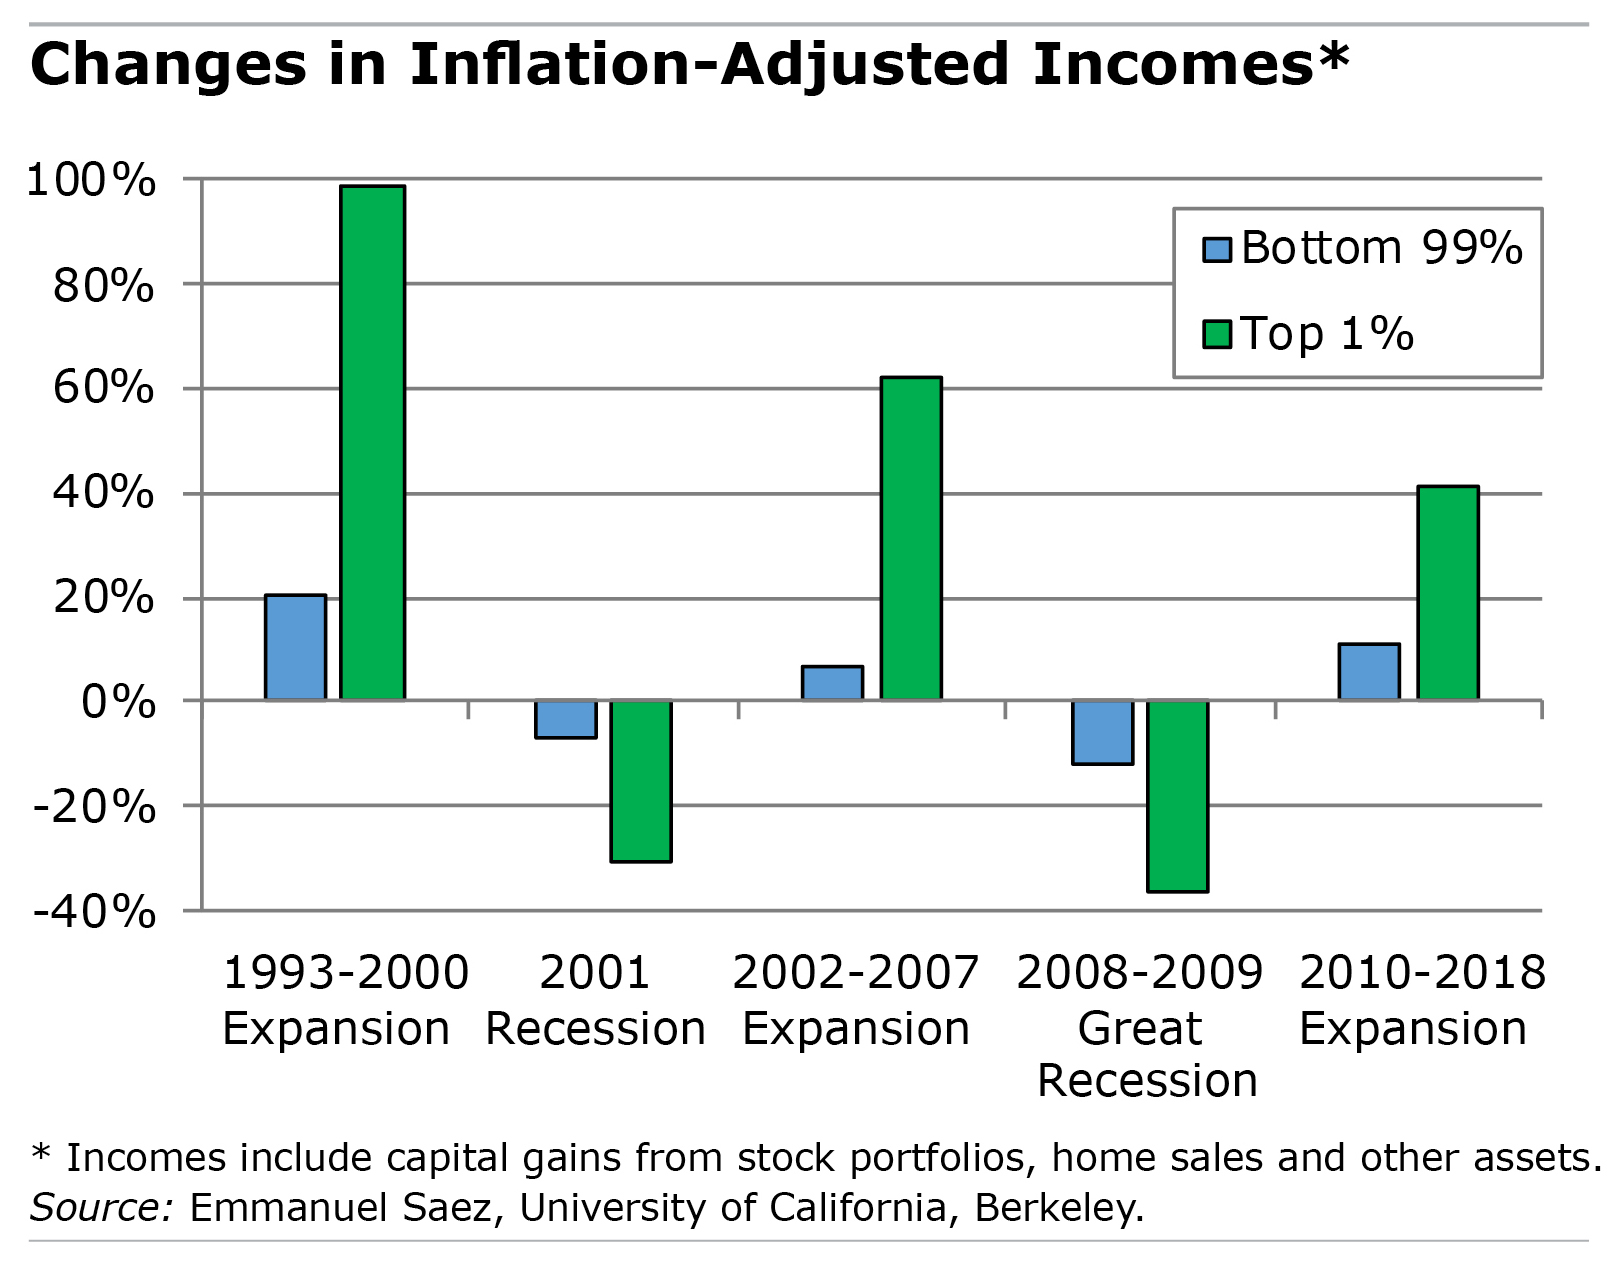 anges in Inflation-Adjusted Incomes